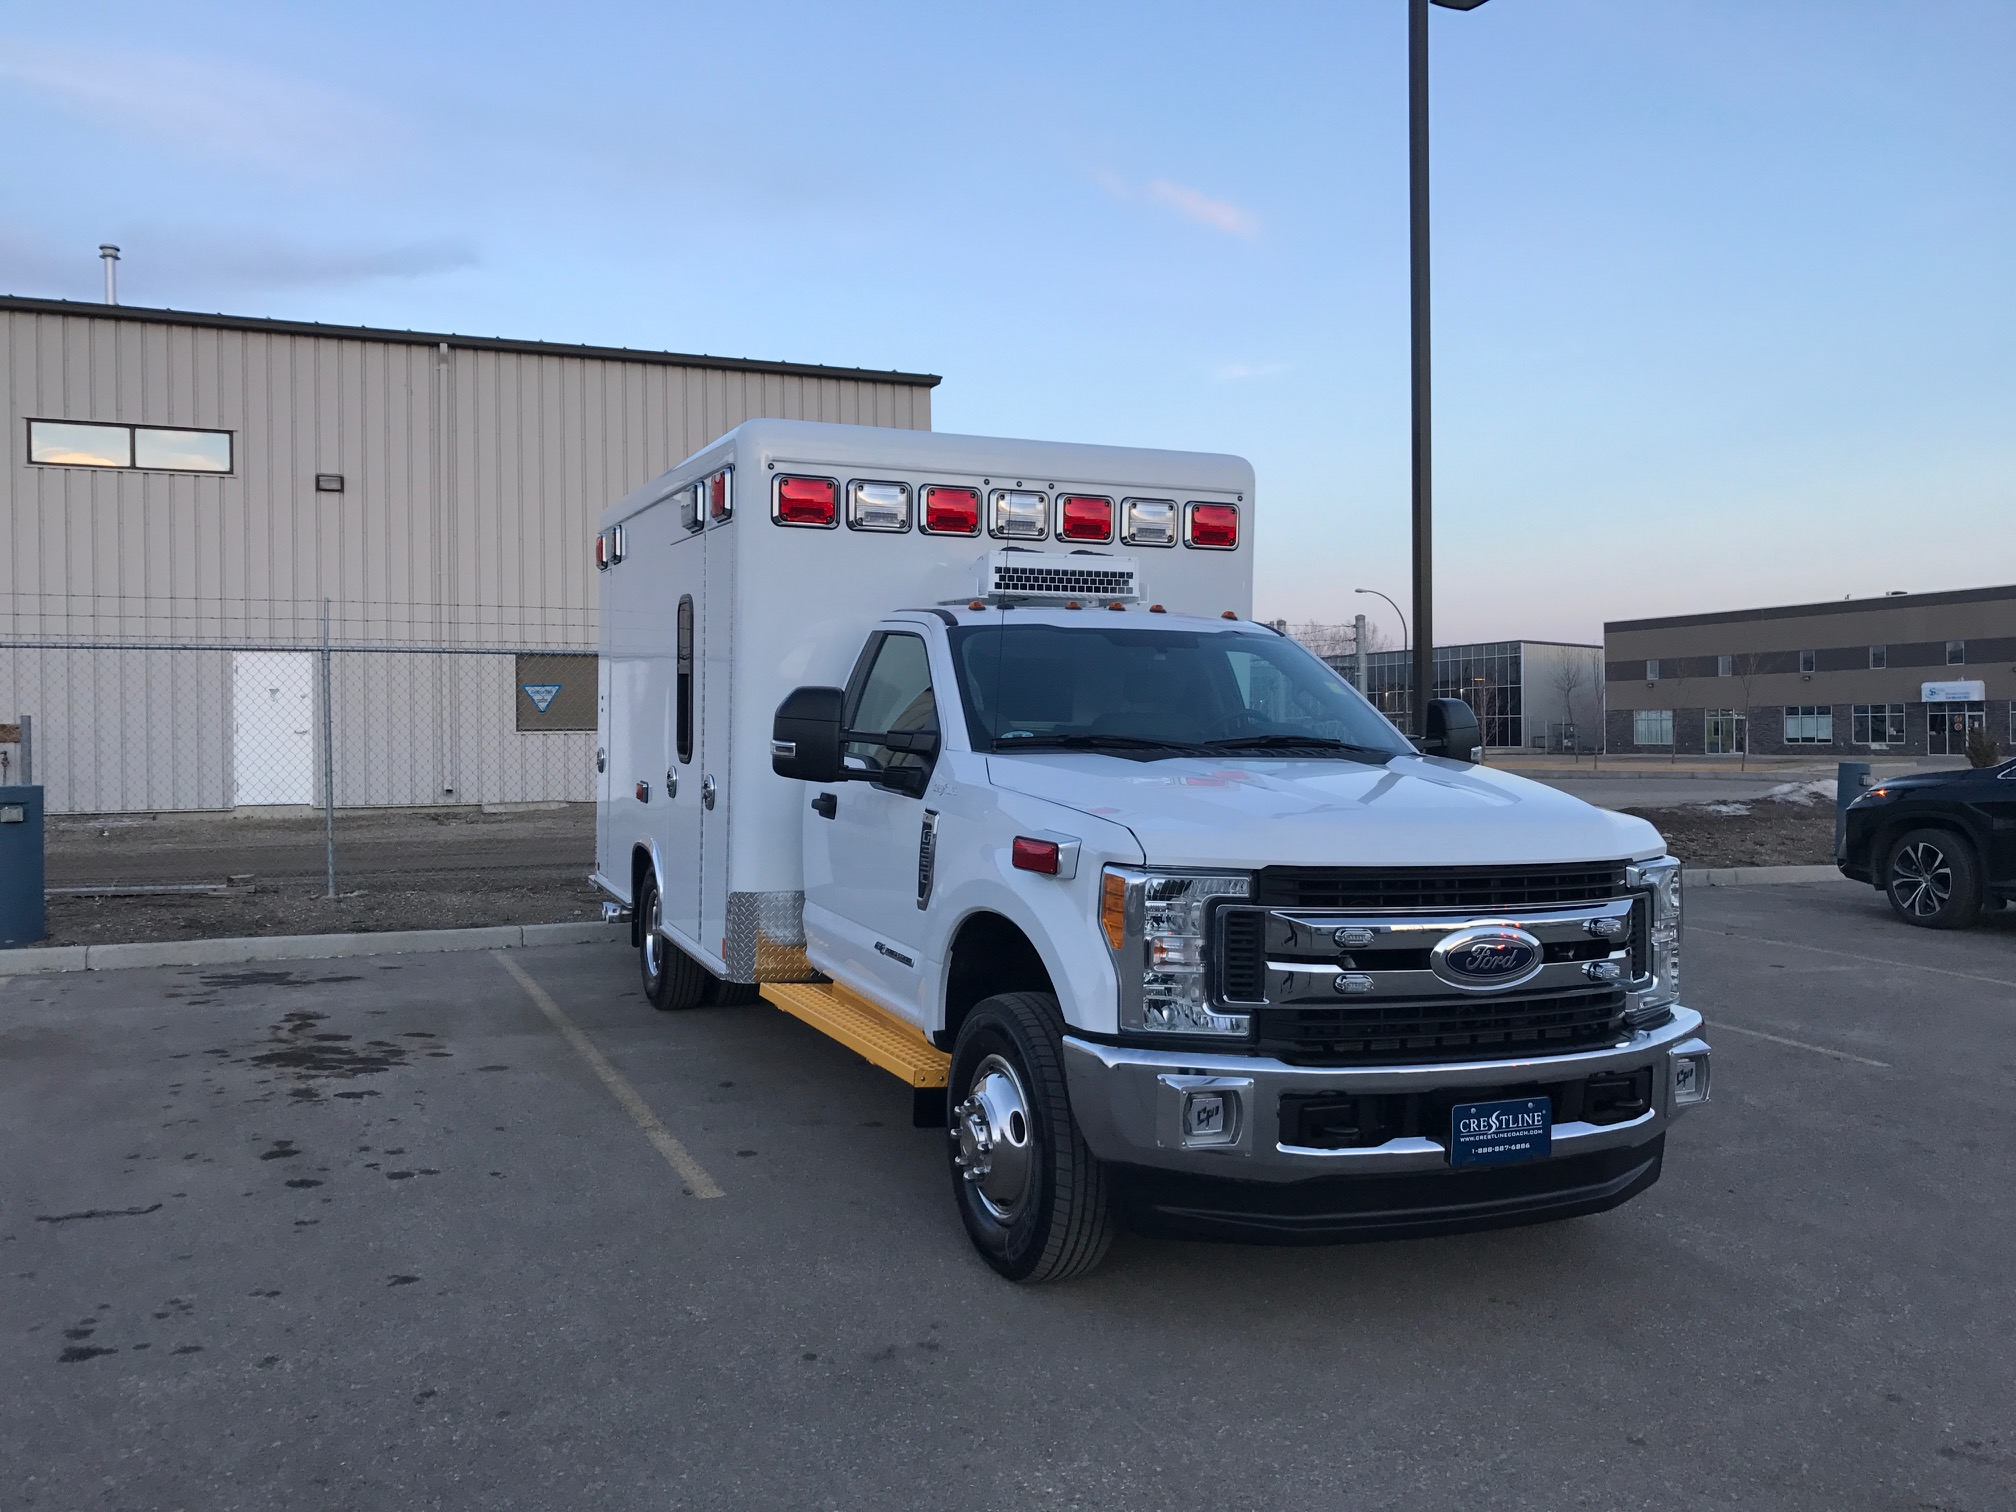 Ambulance may not be exactly as shown.